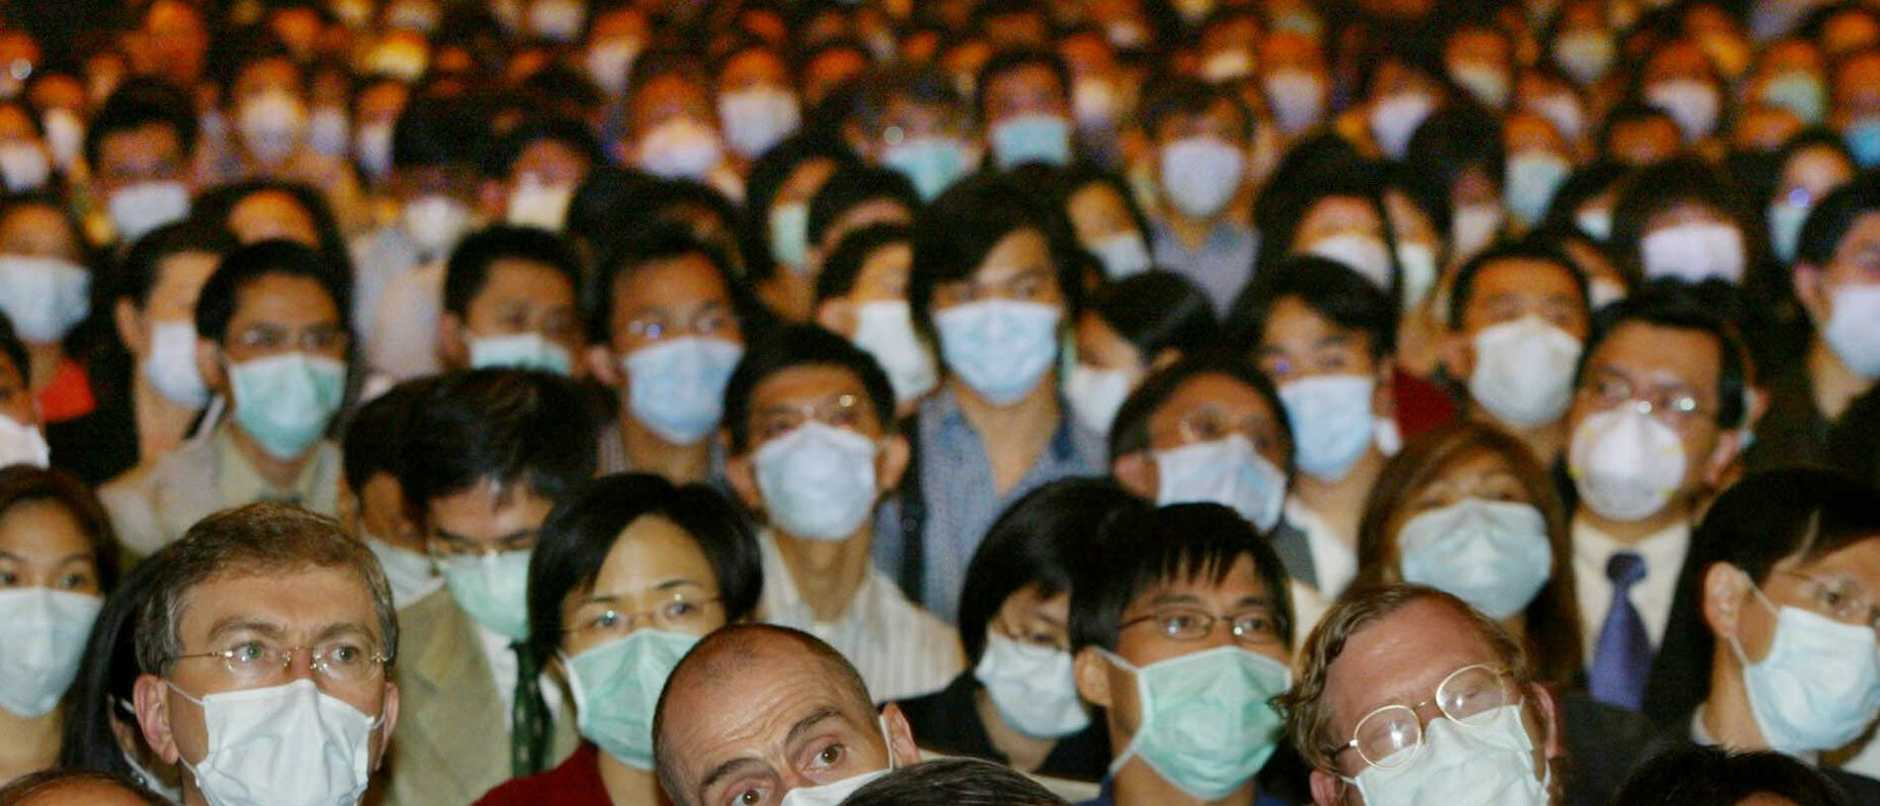 Doctors and health care workers wearing face masks attend a symposium on Severe Acute Respiratory Syndrome (SARS) in Hong Kong 25/04/2003.